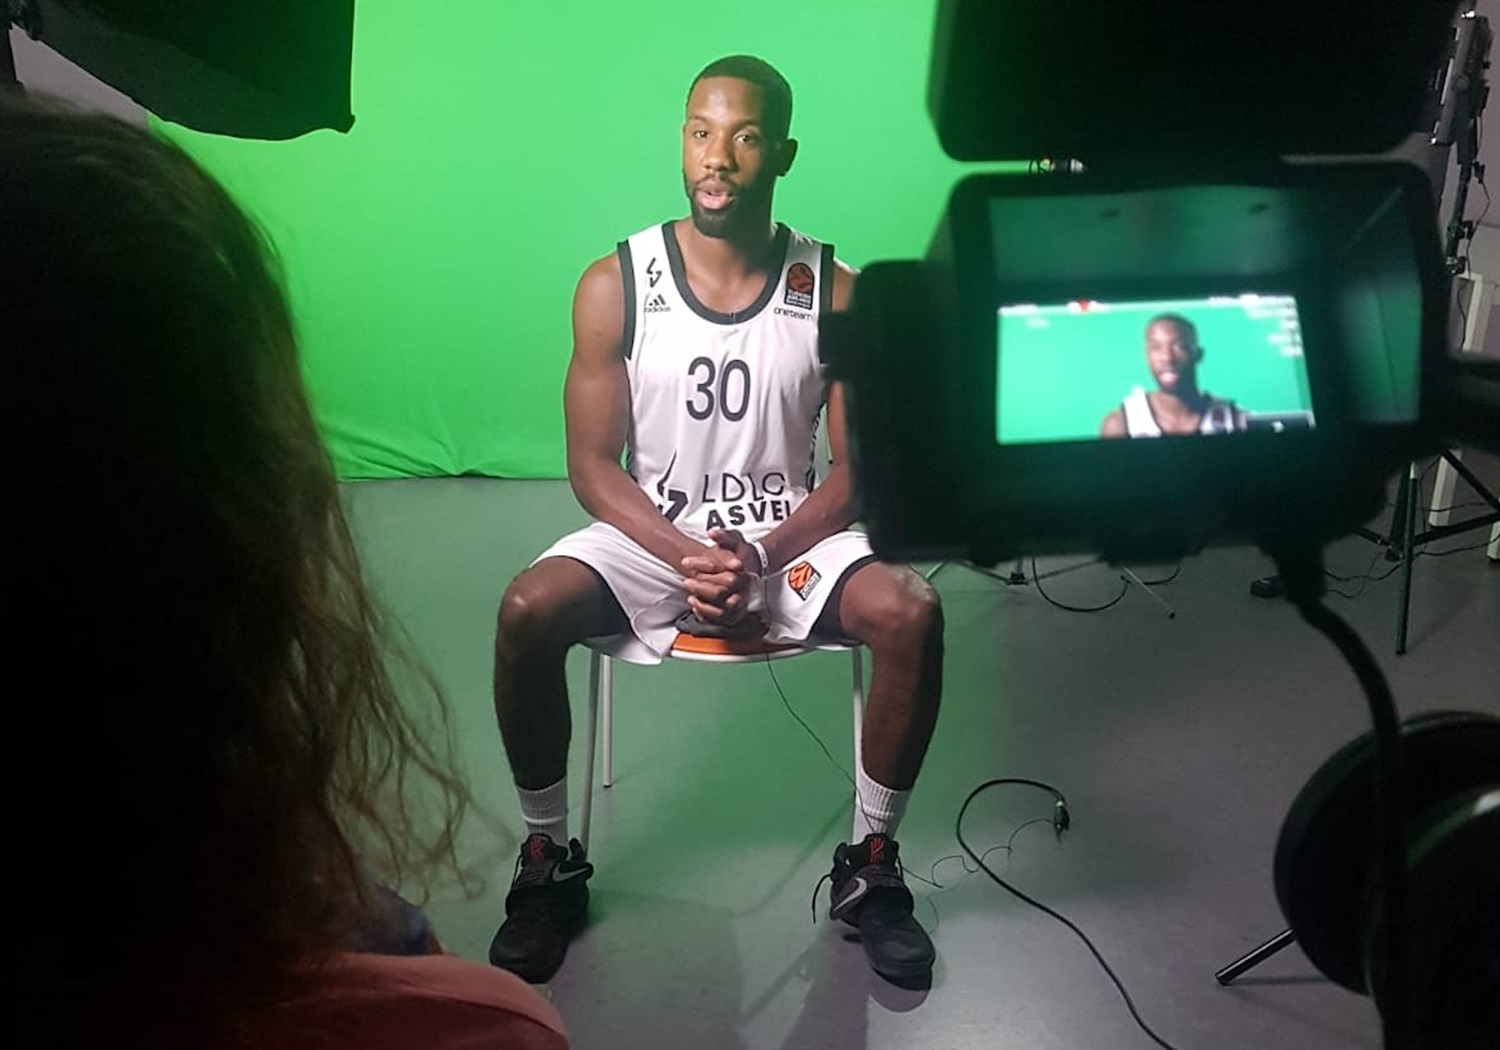 Norris Cole - LDLC ASVEL Villeurbanne Media Day - EB20